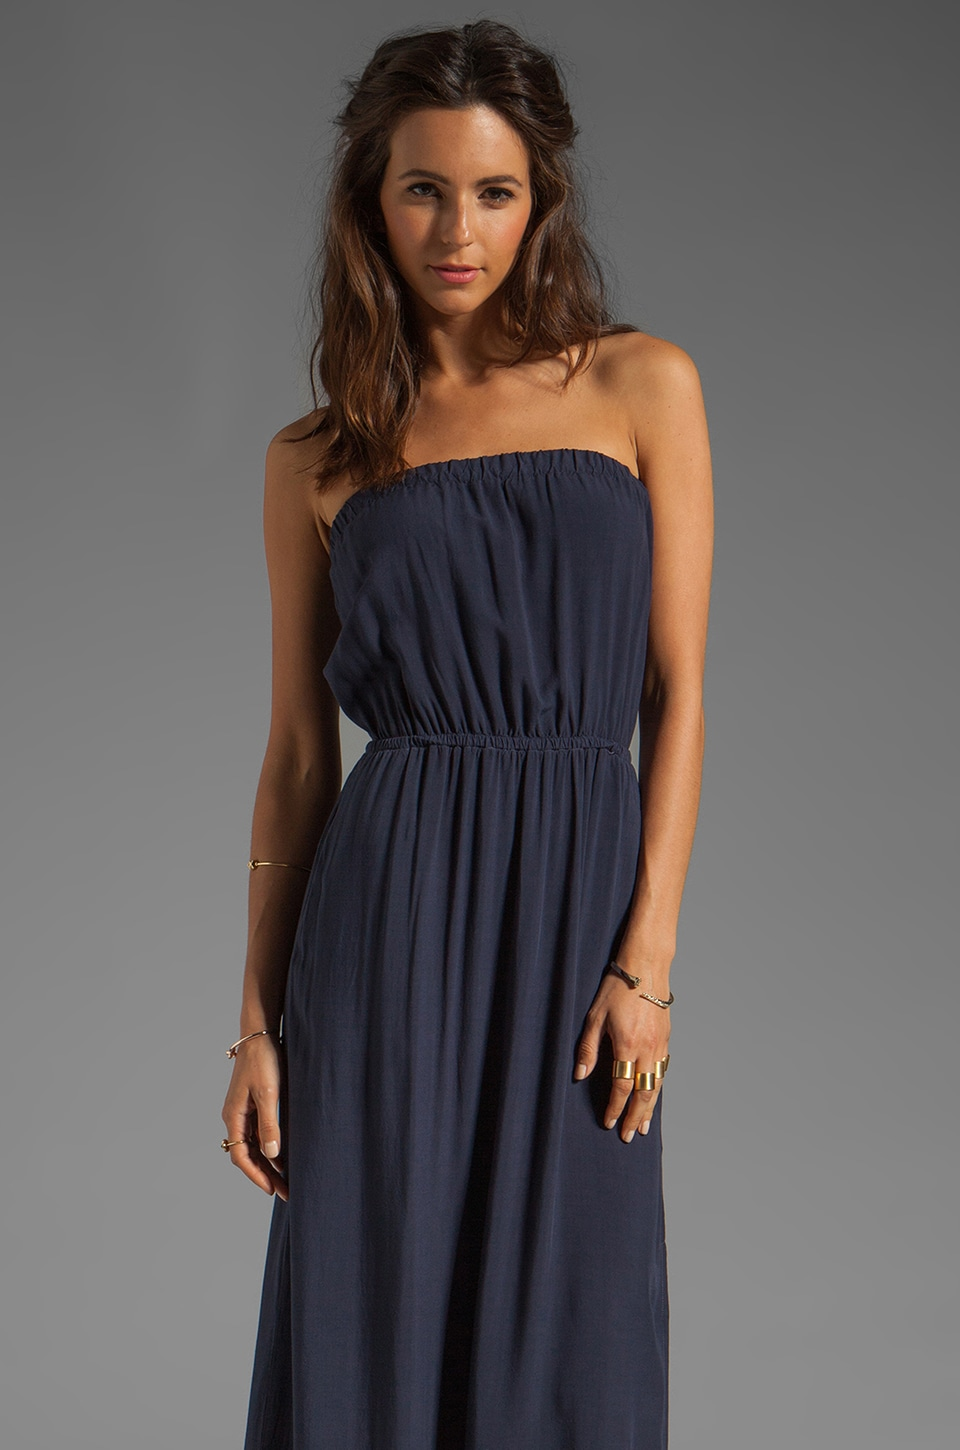 Splendid Maxi Dress in Navy